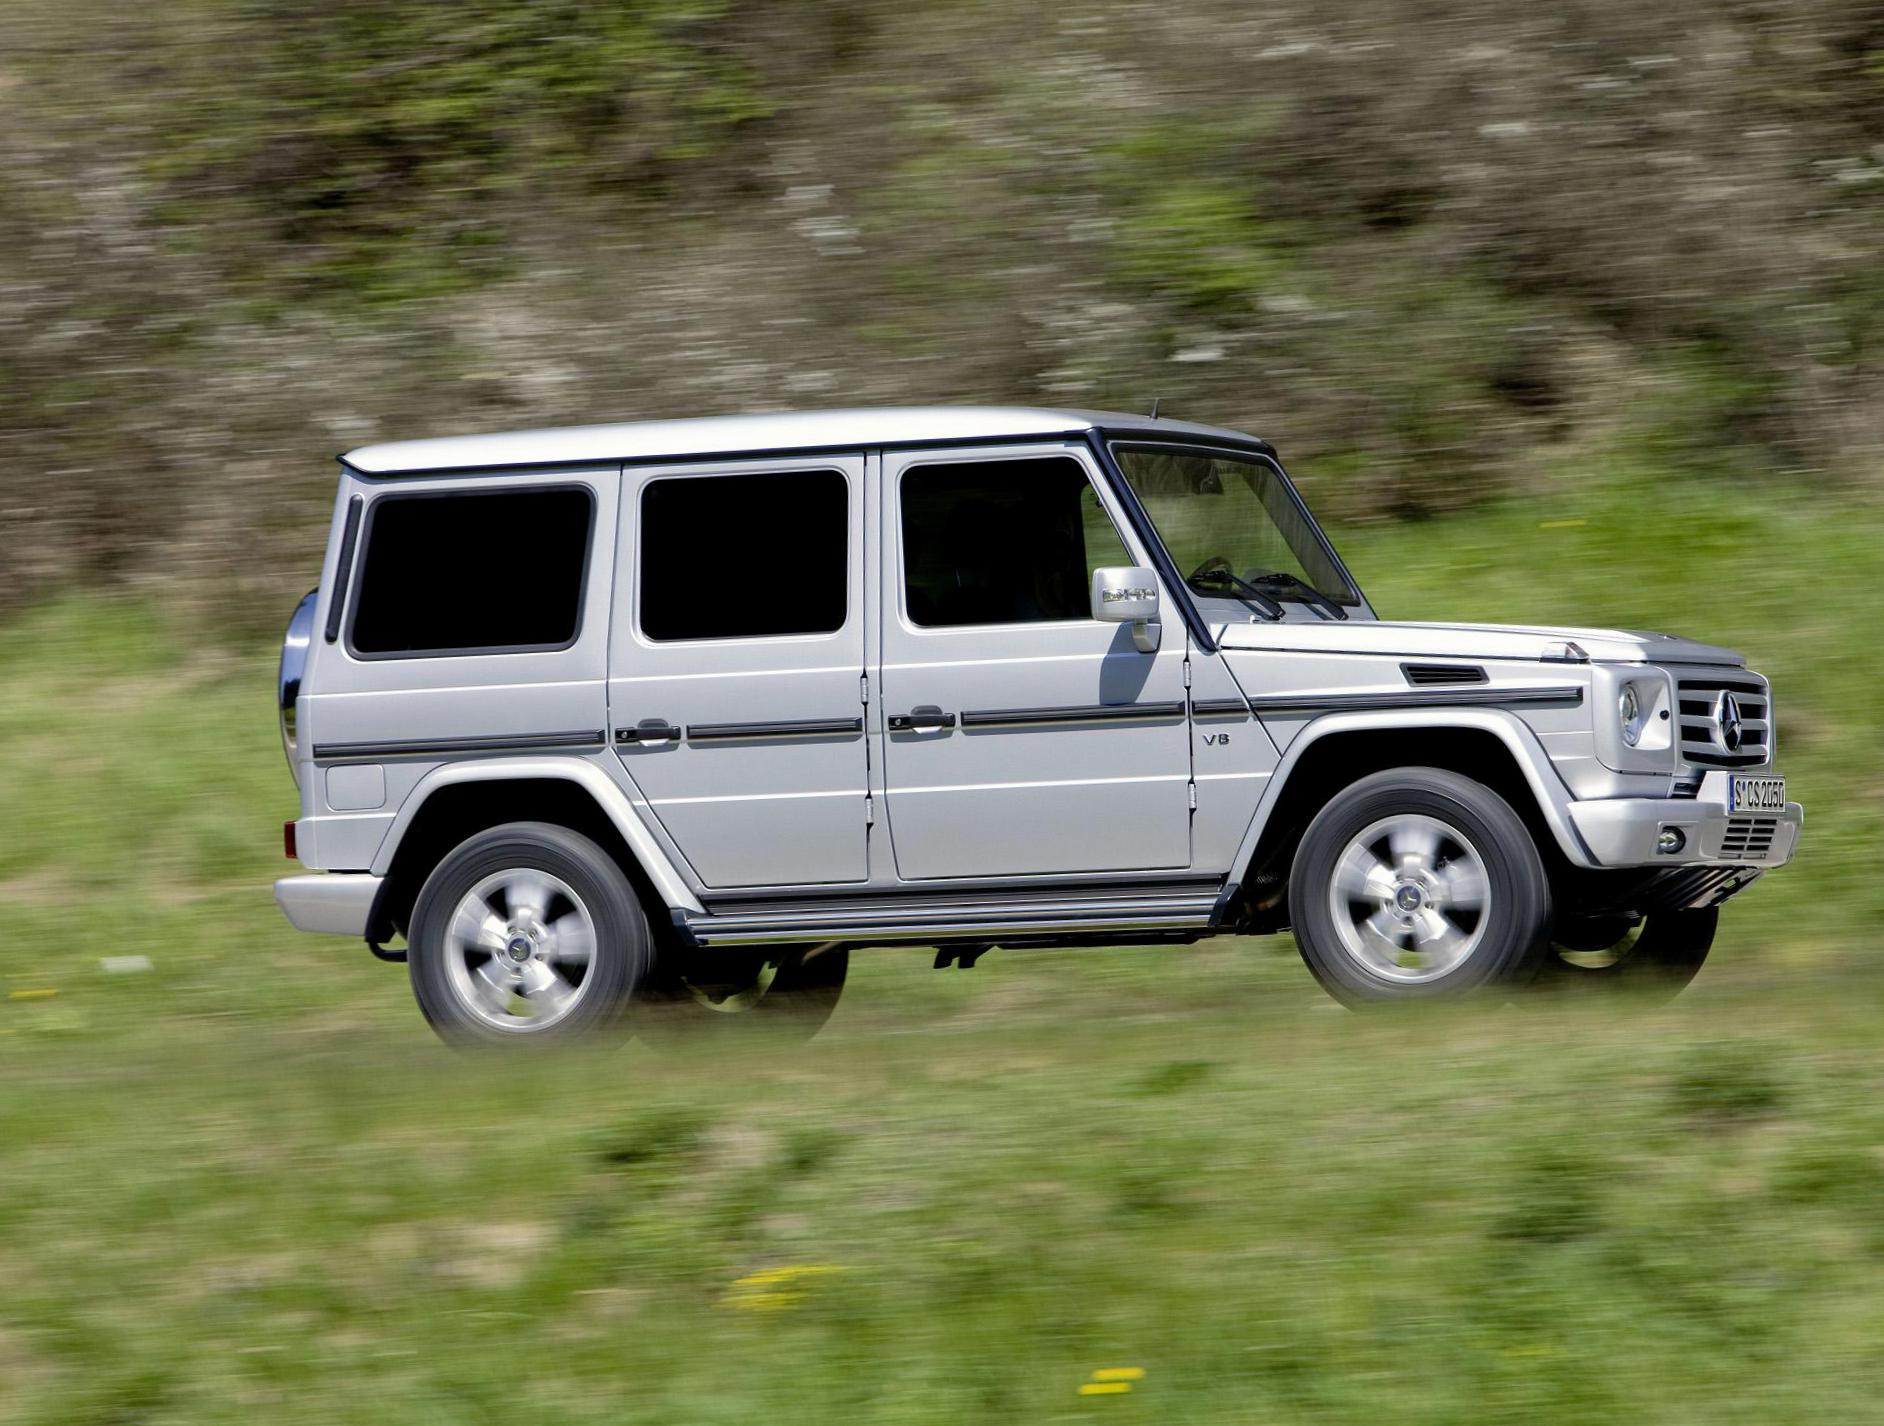 G-Class (W463) Mercedes model coupe